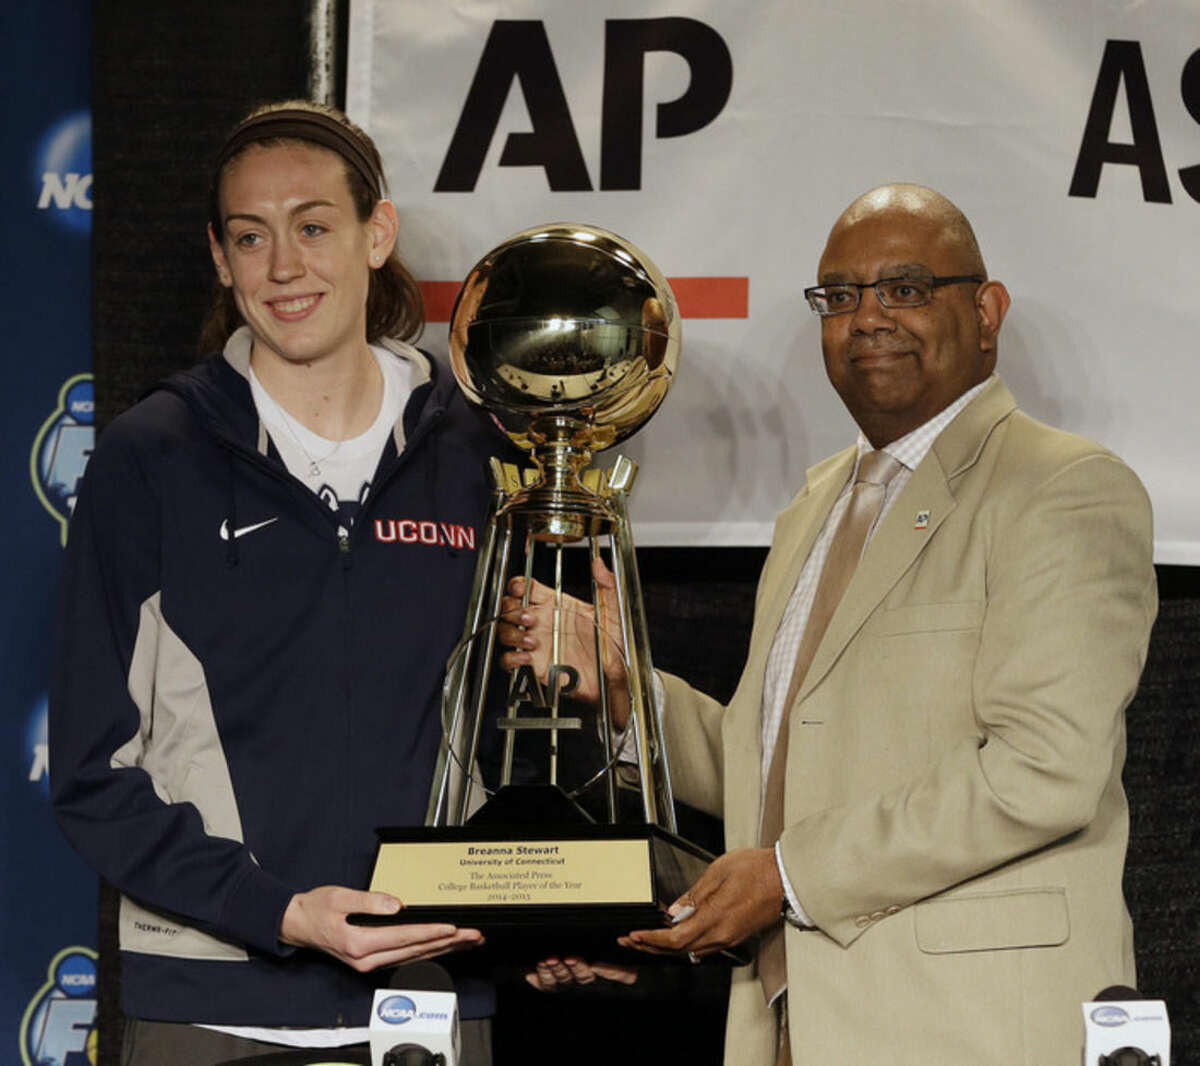 Associated Press Assistant Sports Editor, South Region Oscar Dixon presents the Associated Press Player of the Year award to Connecticut's Breanna Stewart, left, at the NCAA Final Four tournament, Saturday, April 4, 2015, in Tampa, Fla. Stewart earned The Associated Press Player of the Year award Saturday for the second consecutive year and Florida State's Sue Semrau was selected as AP Coach of the year for the first time. (AP Photo/Chris O'Meara)